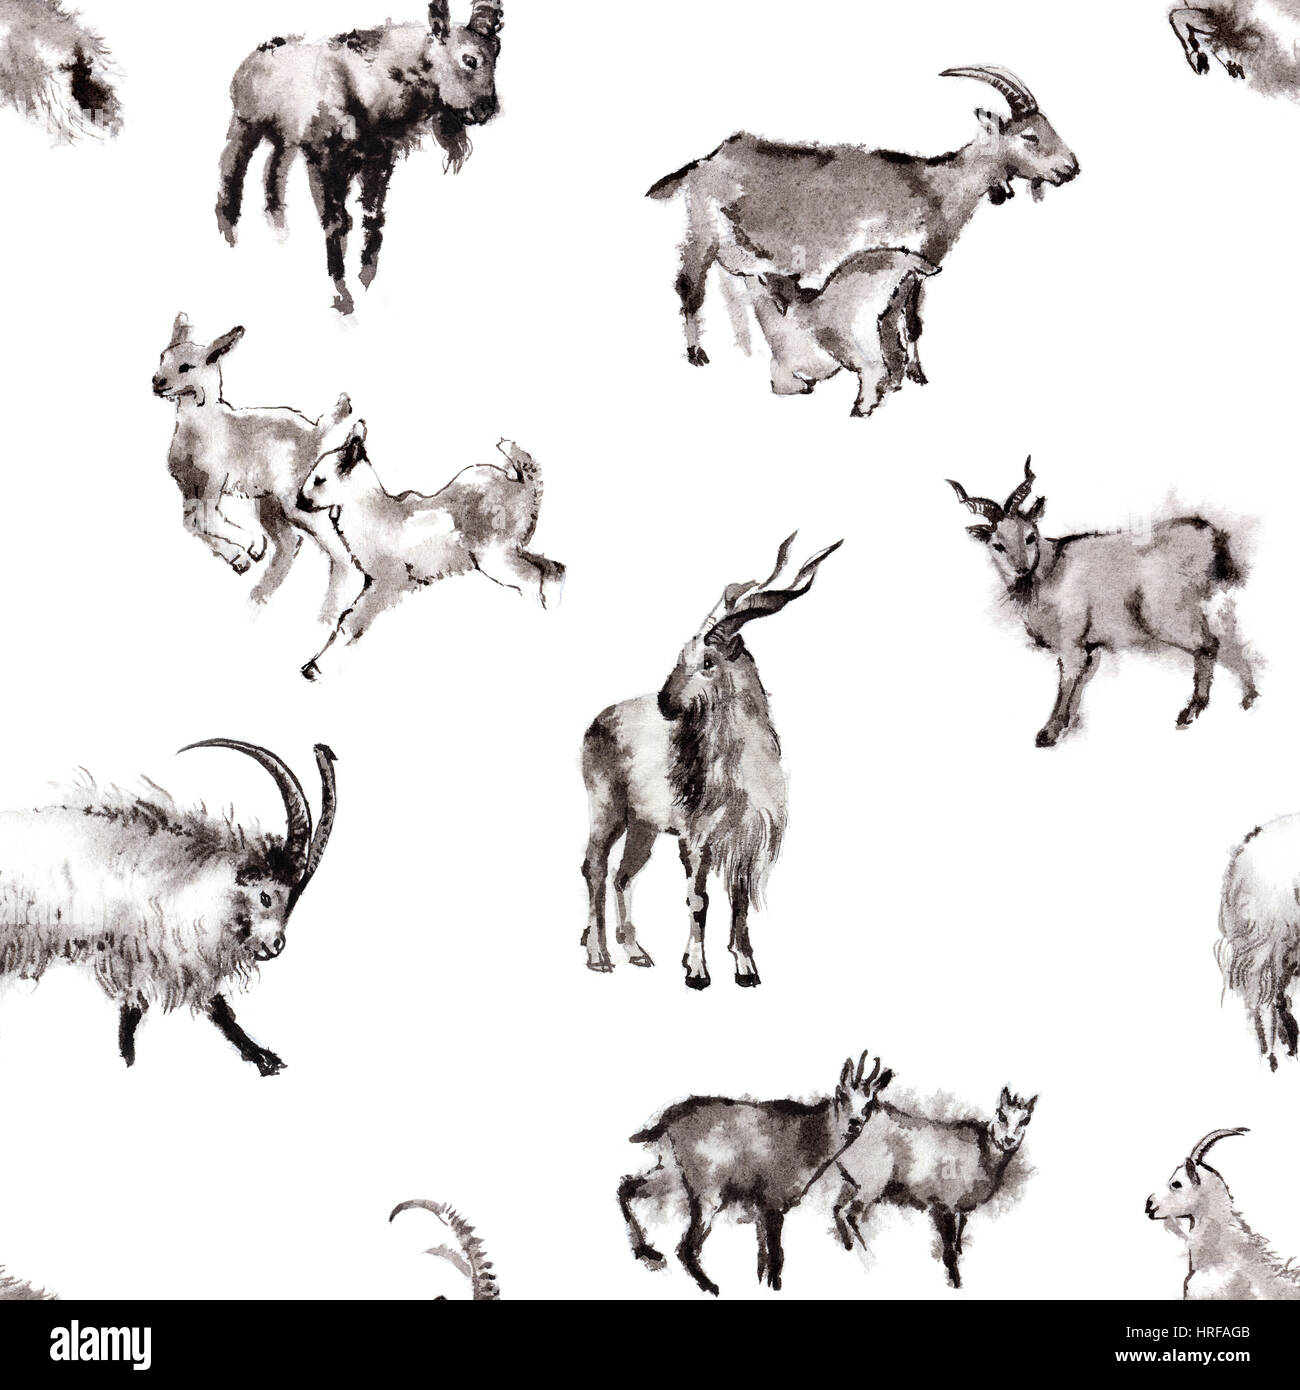 Seamless background texture with 8 images of goats, oriental ink painting, isolated on white background. Year of - Stock Image